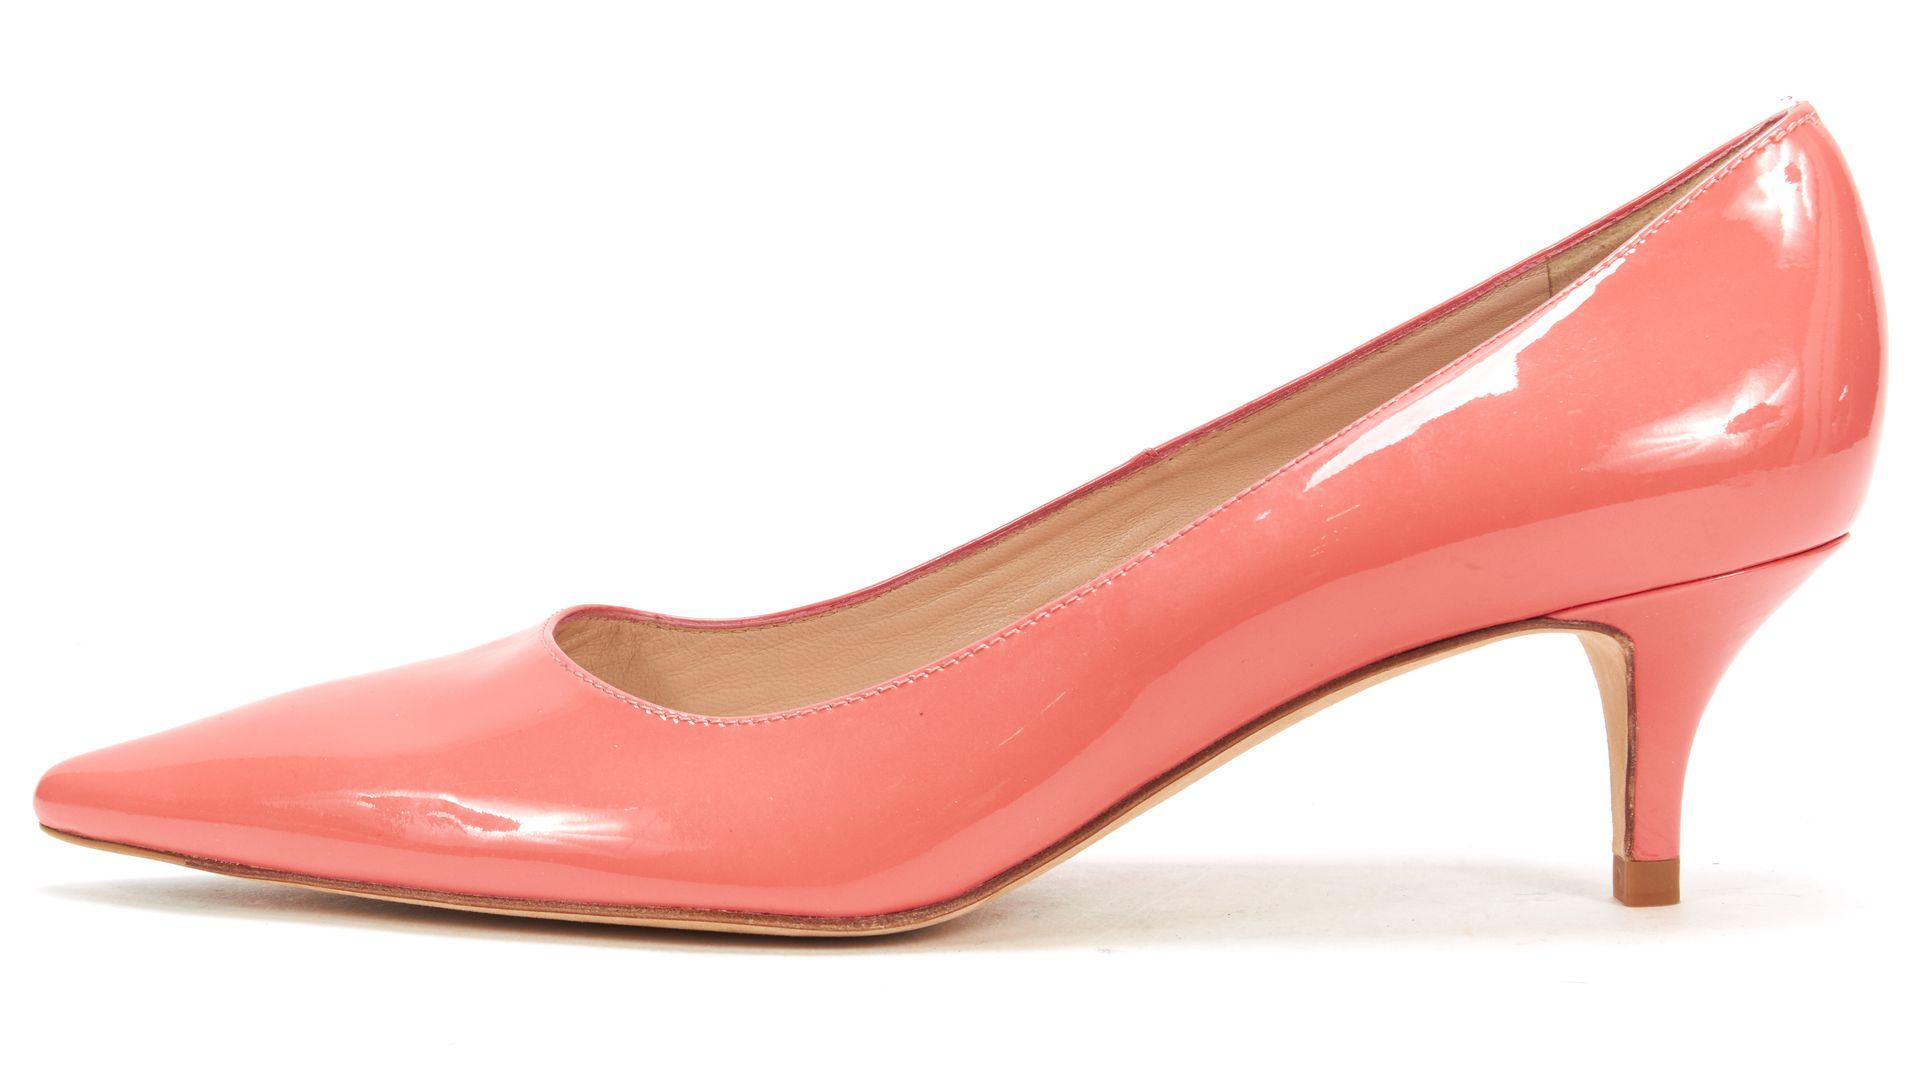 L.K. Bennett Coral Patent Leather Pointed Toe Kitten Heel Pumps ...